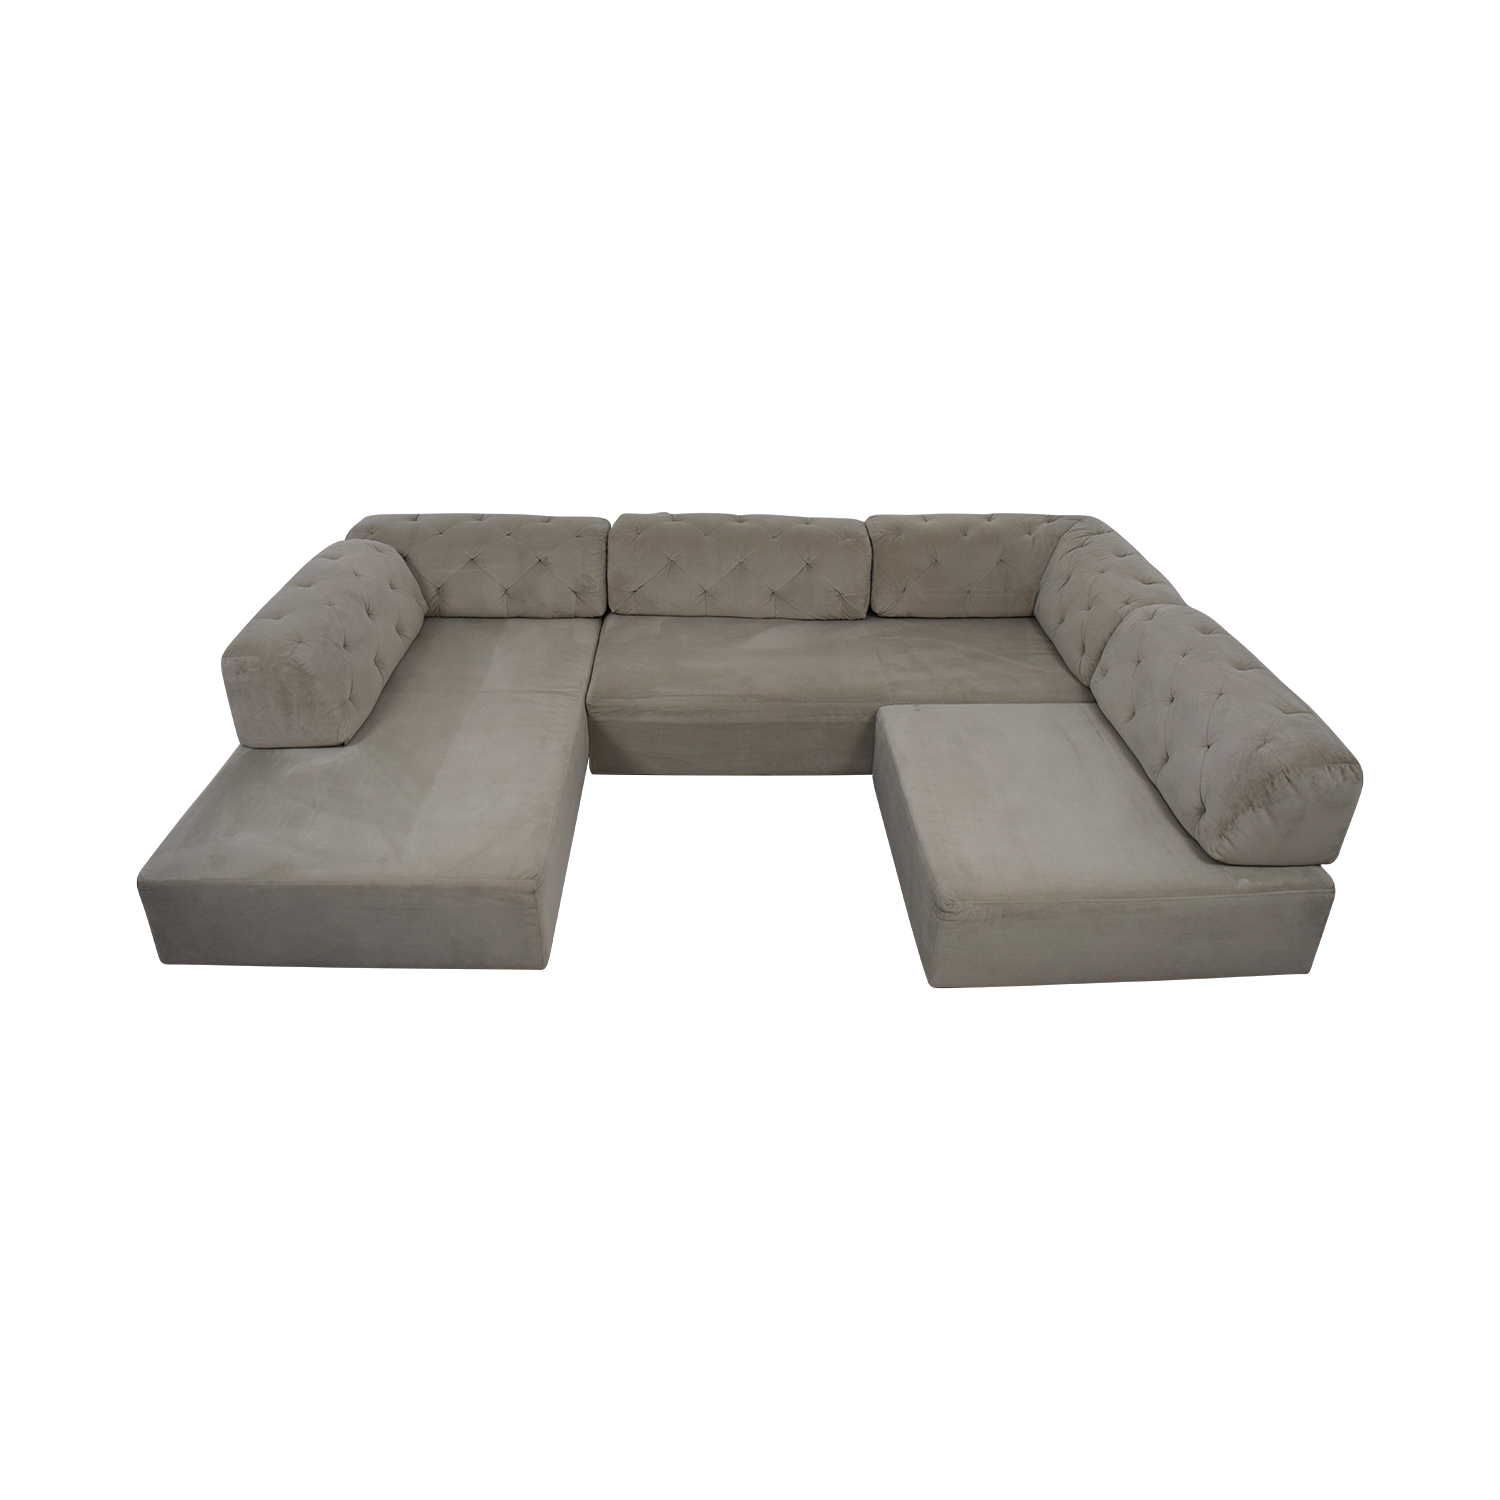 West Elm West Elm Tillary Grey Tufted U-Shaped  Sectional grey